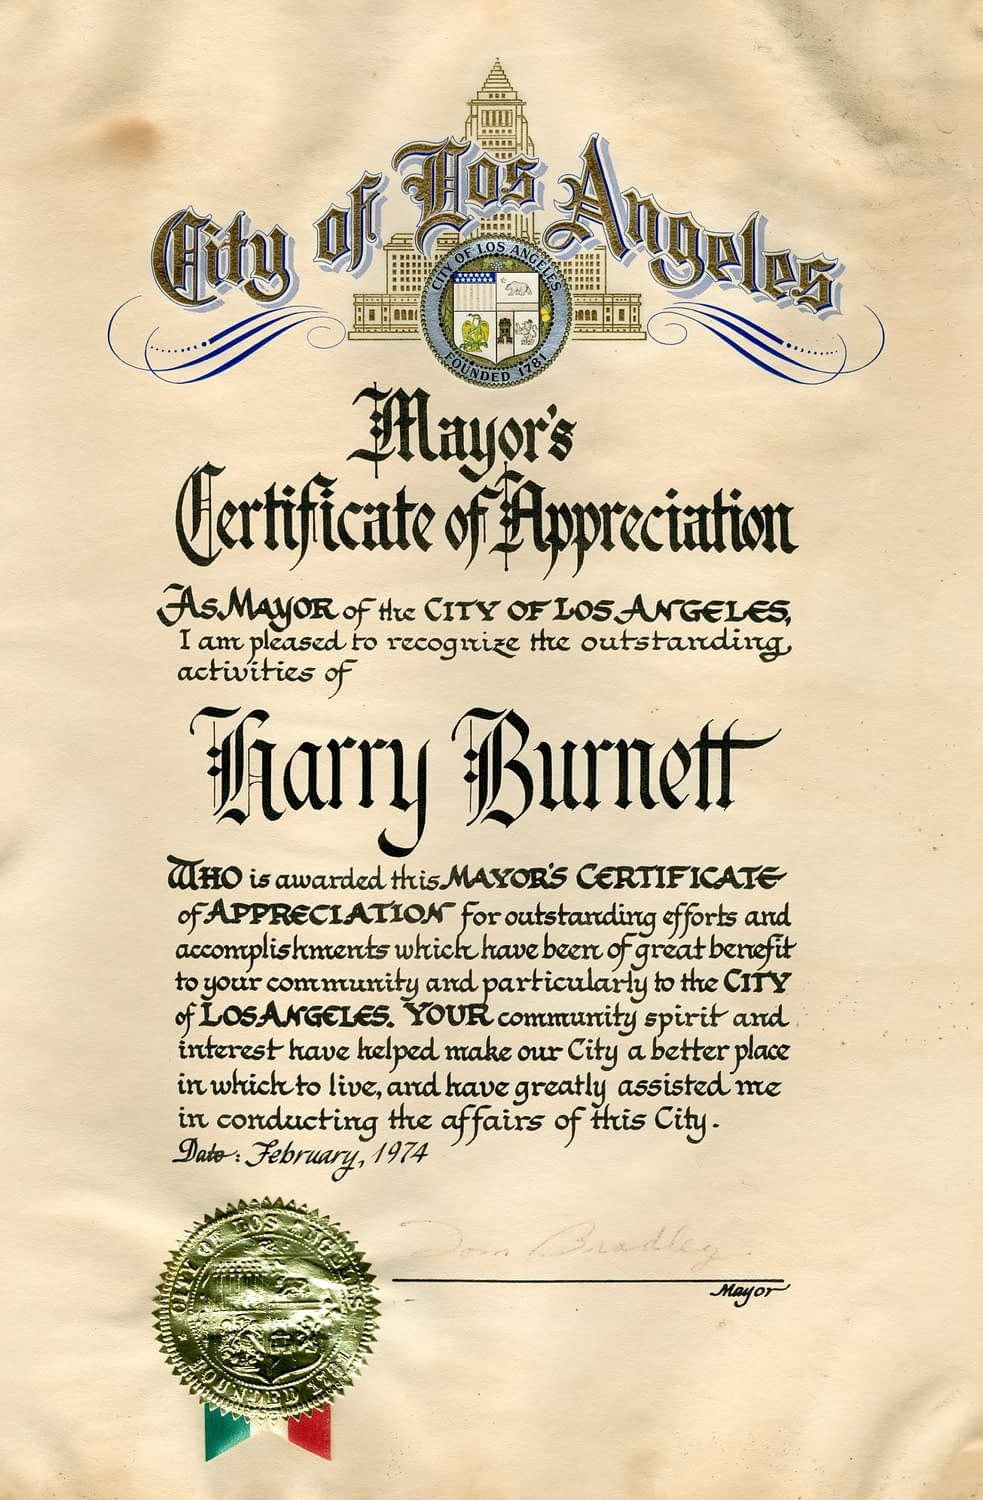 City of Los Angeles Certificate of Appreciation signed by Mayor Tom Bradley to Harry Burnett